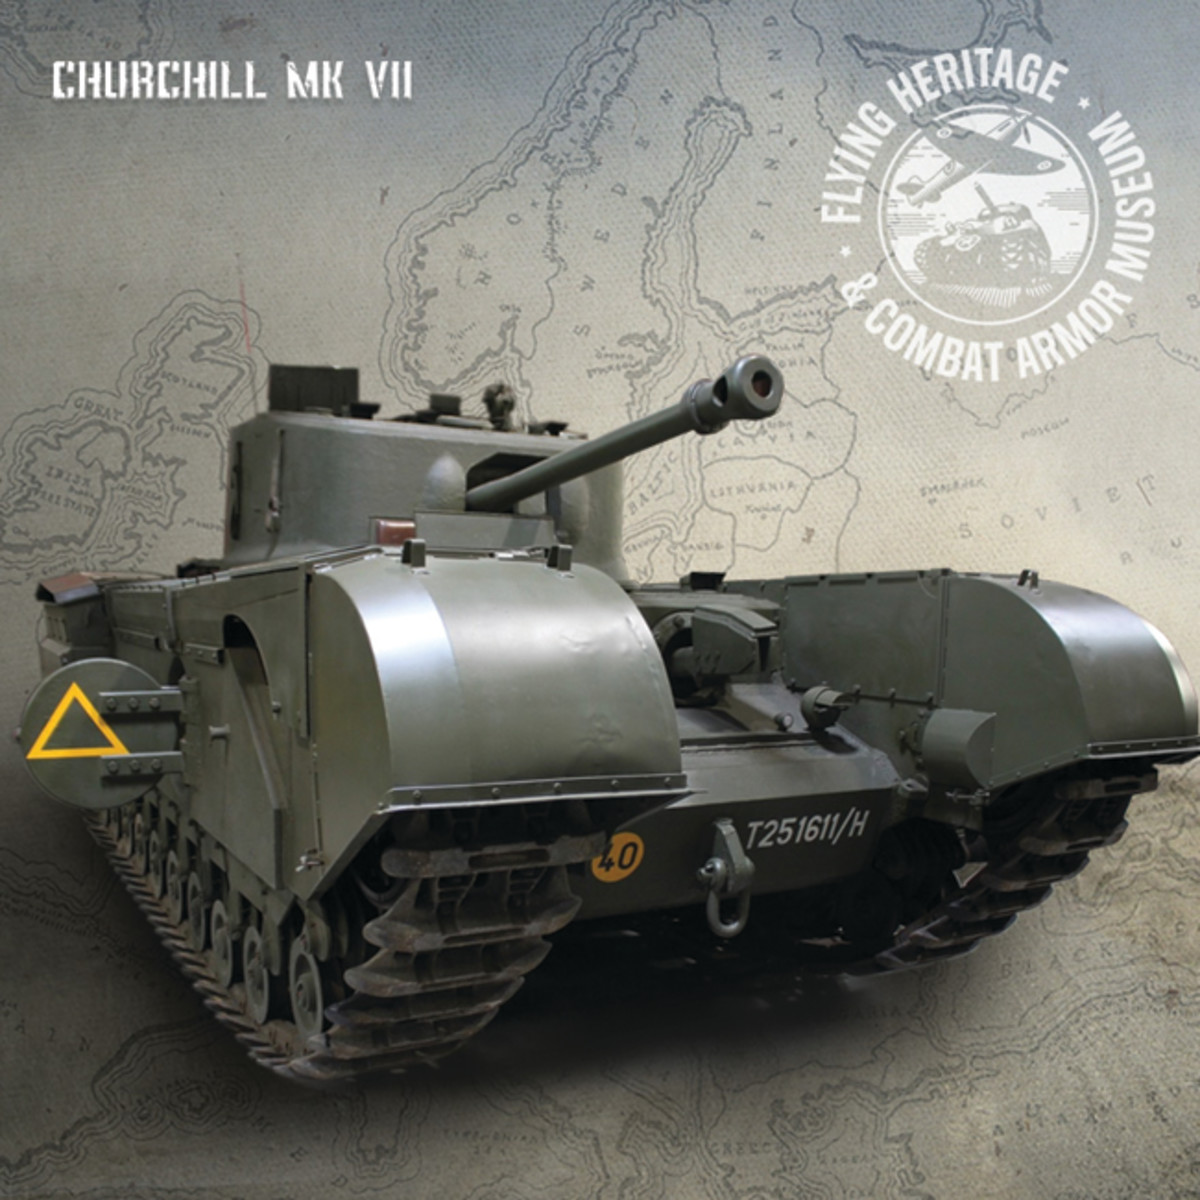 The most recent addition to FHCAM's motorpool is an iconic WWII Churchill Tank.